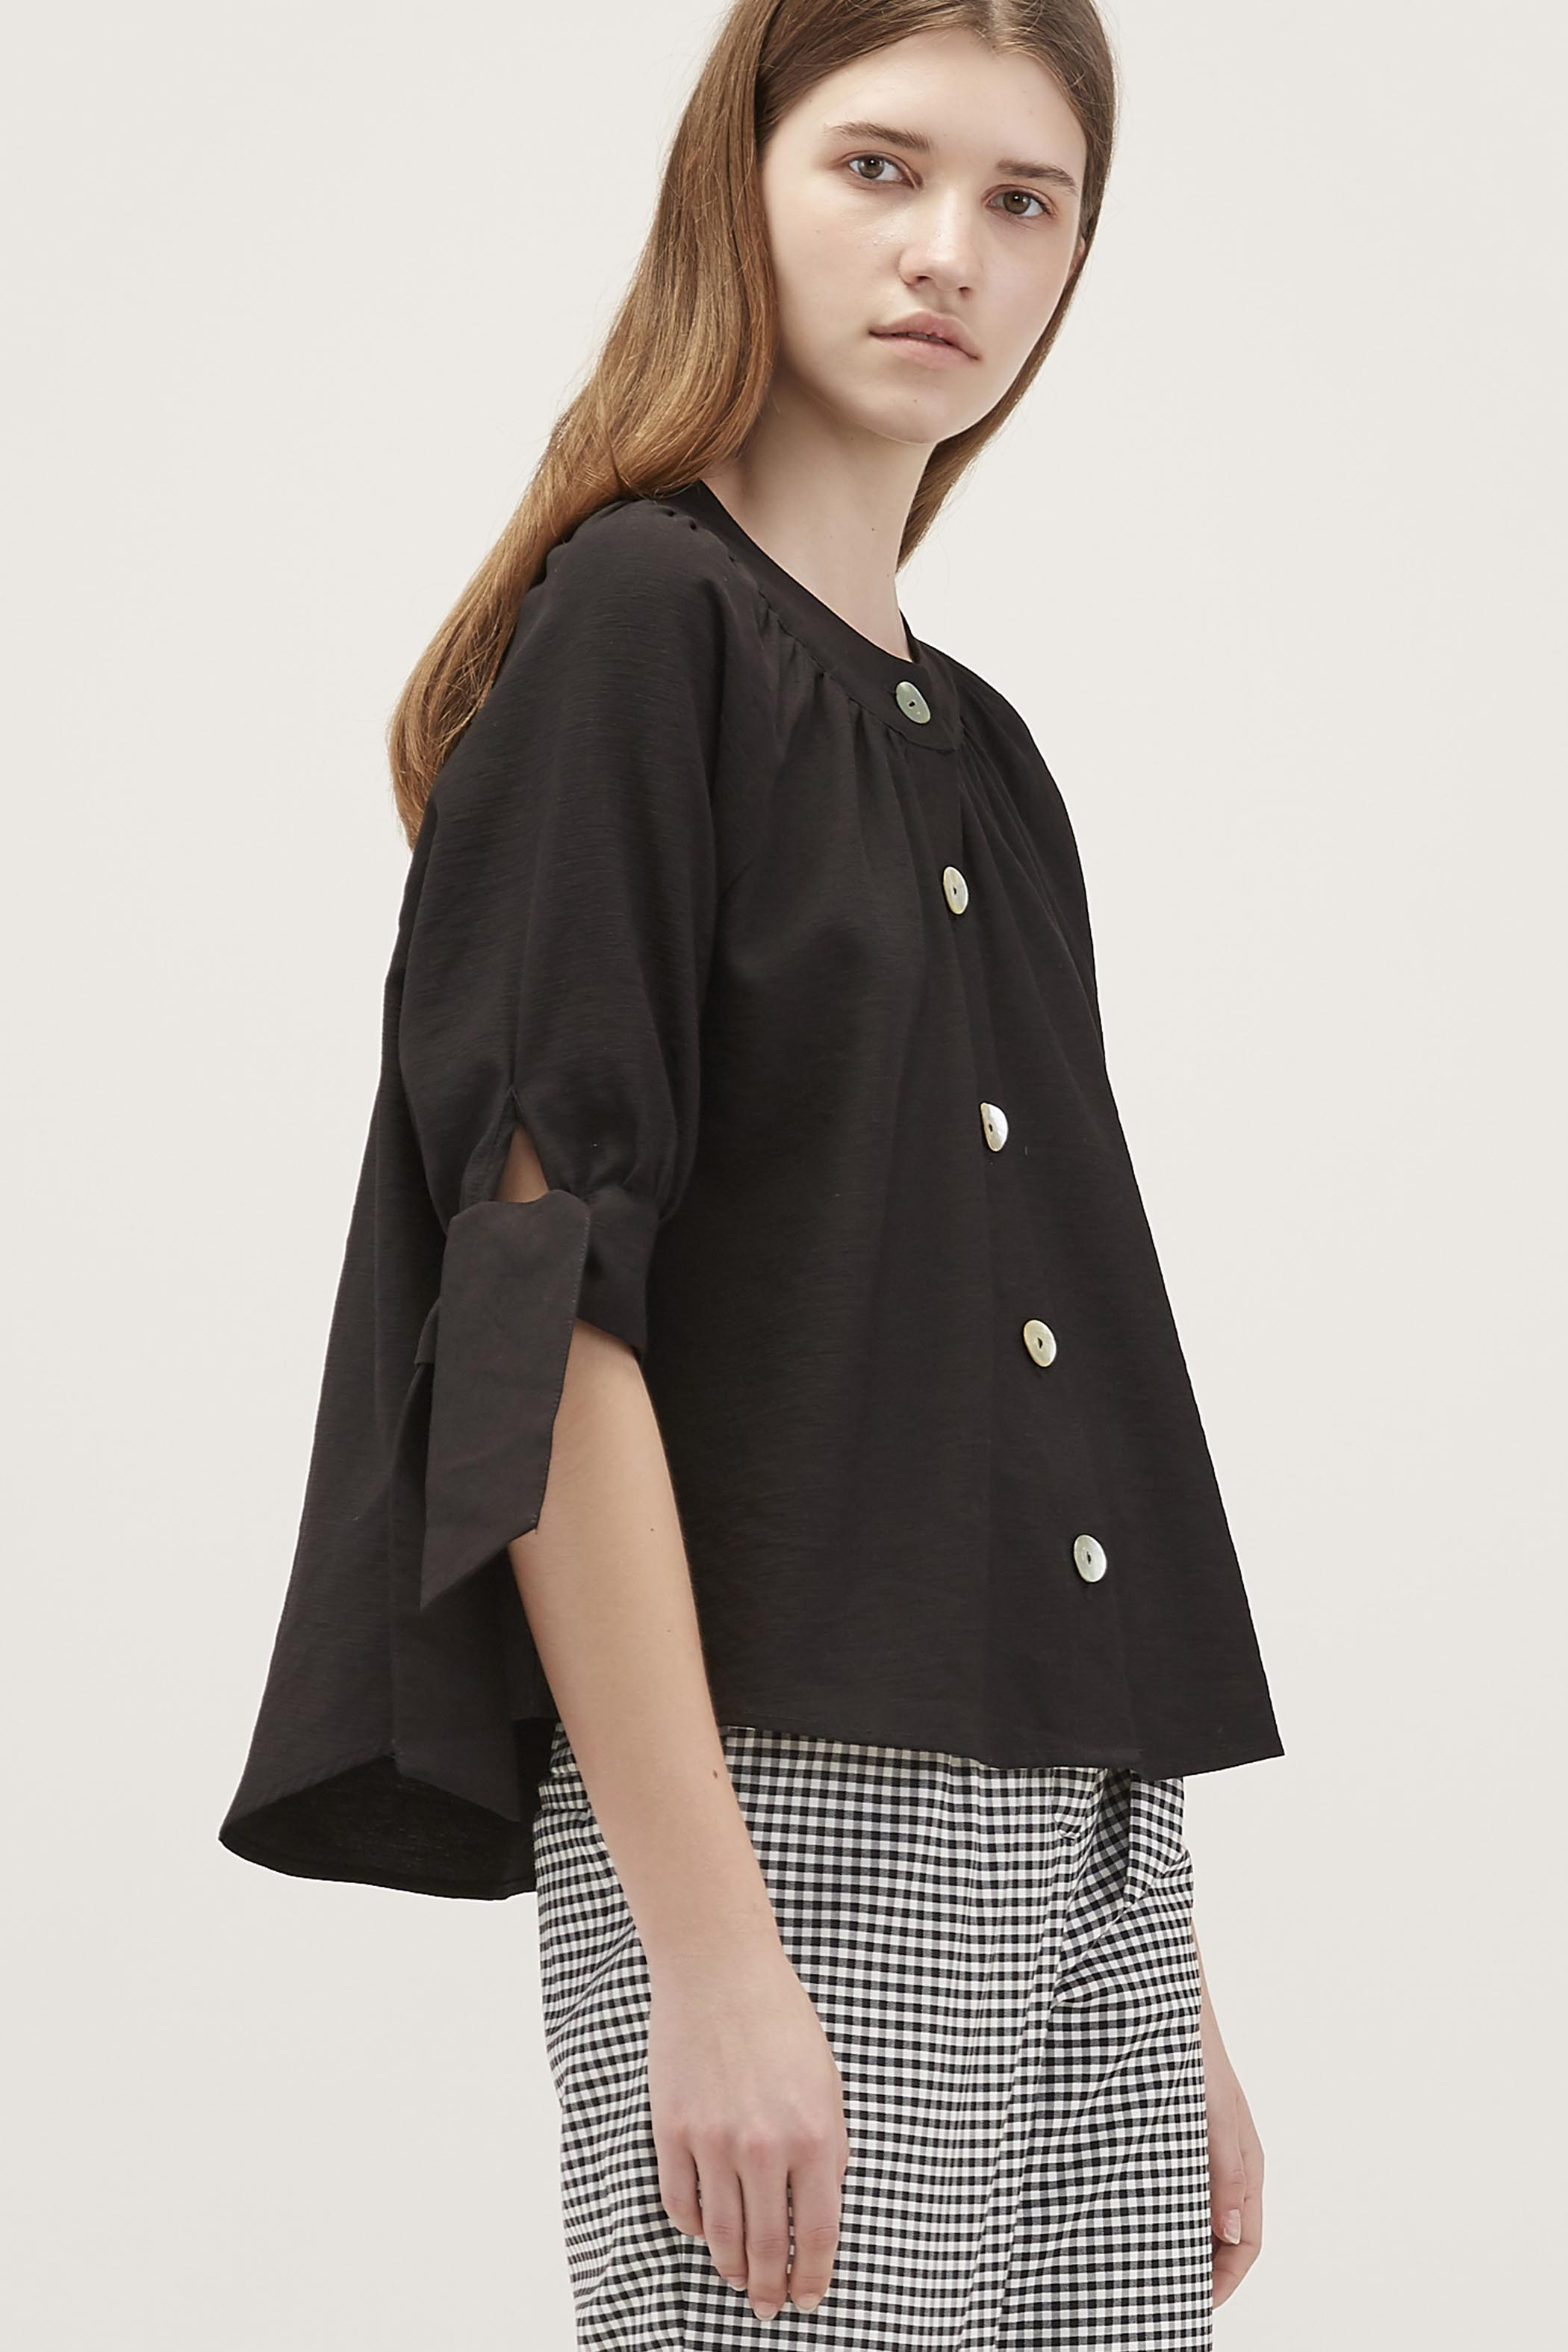 Nala Ring-Collar Blouse